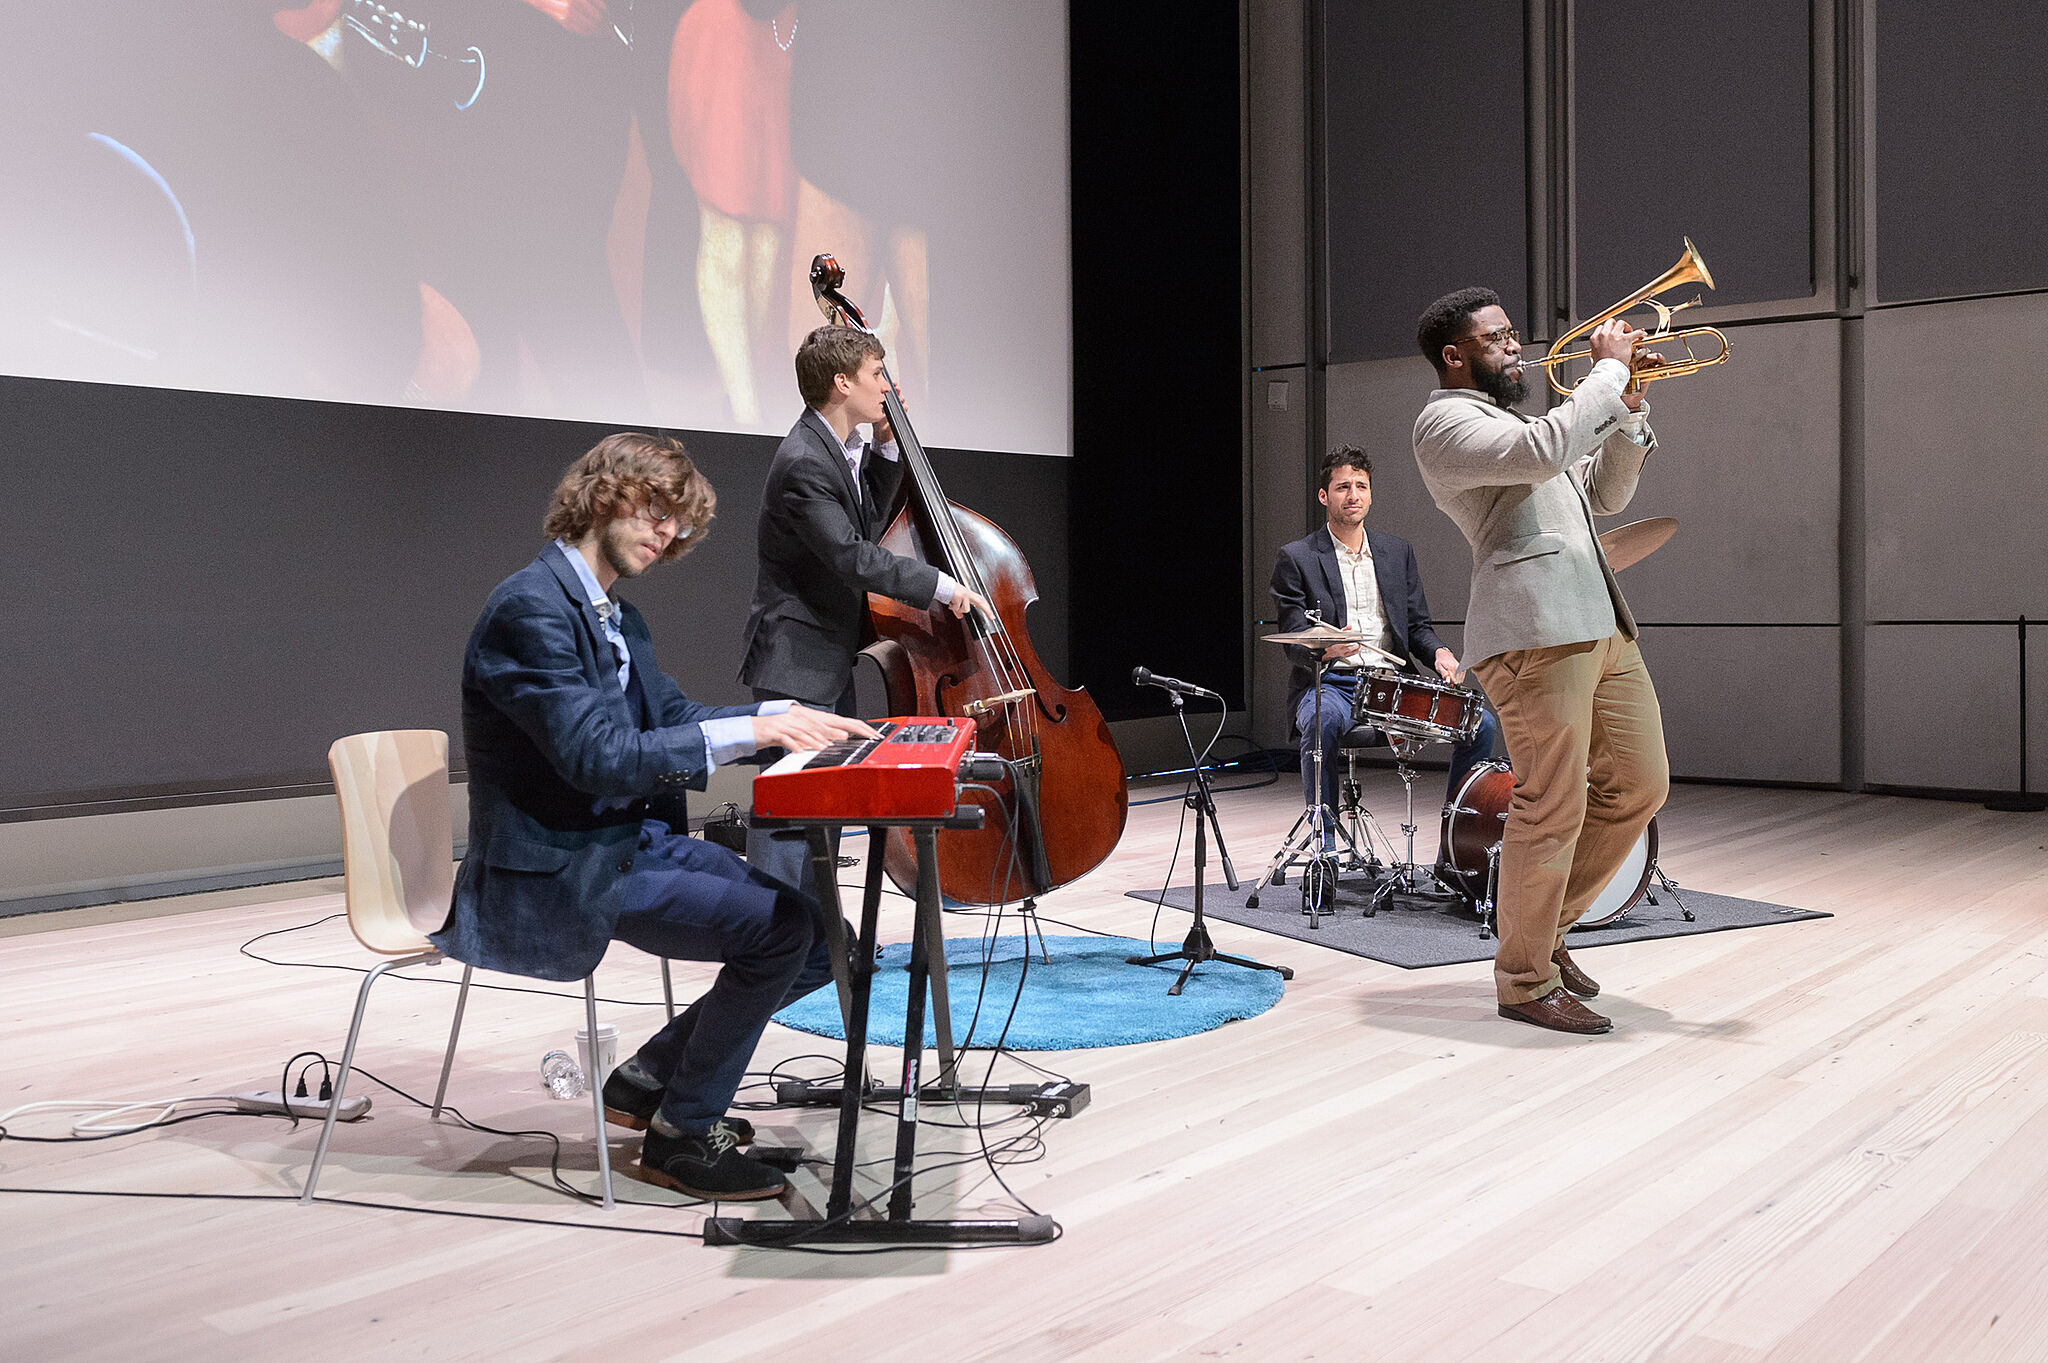 jazz musicians playing on stage